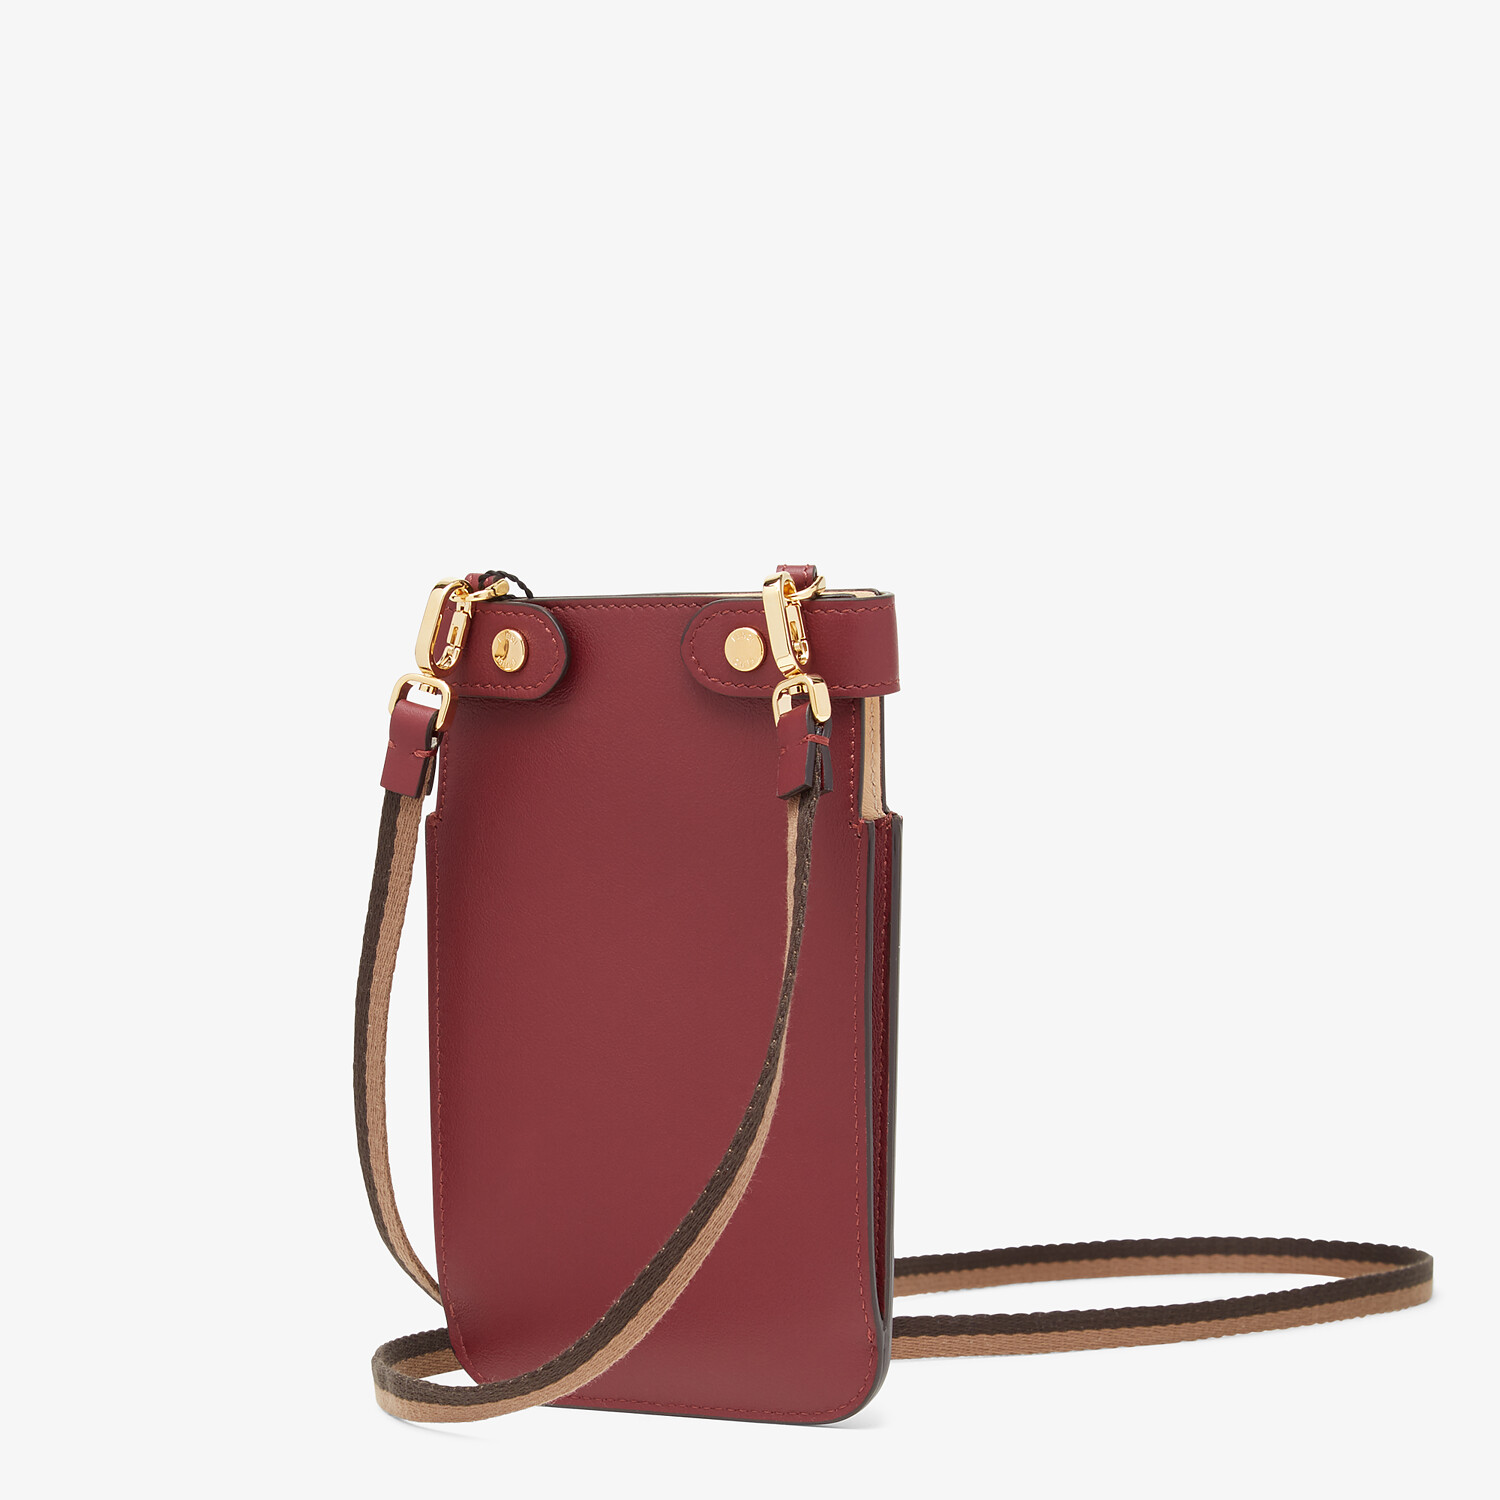 FENDI PEEK-A-PHONE - Burgundy leather pouch - view 2 detail